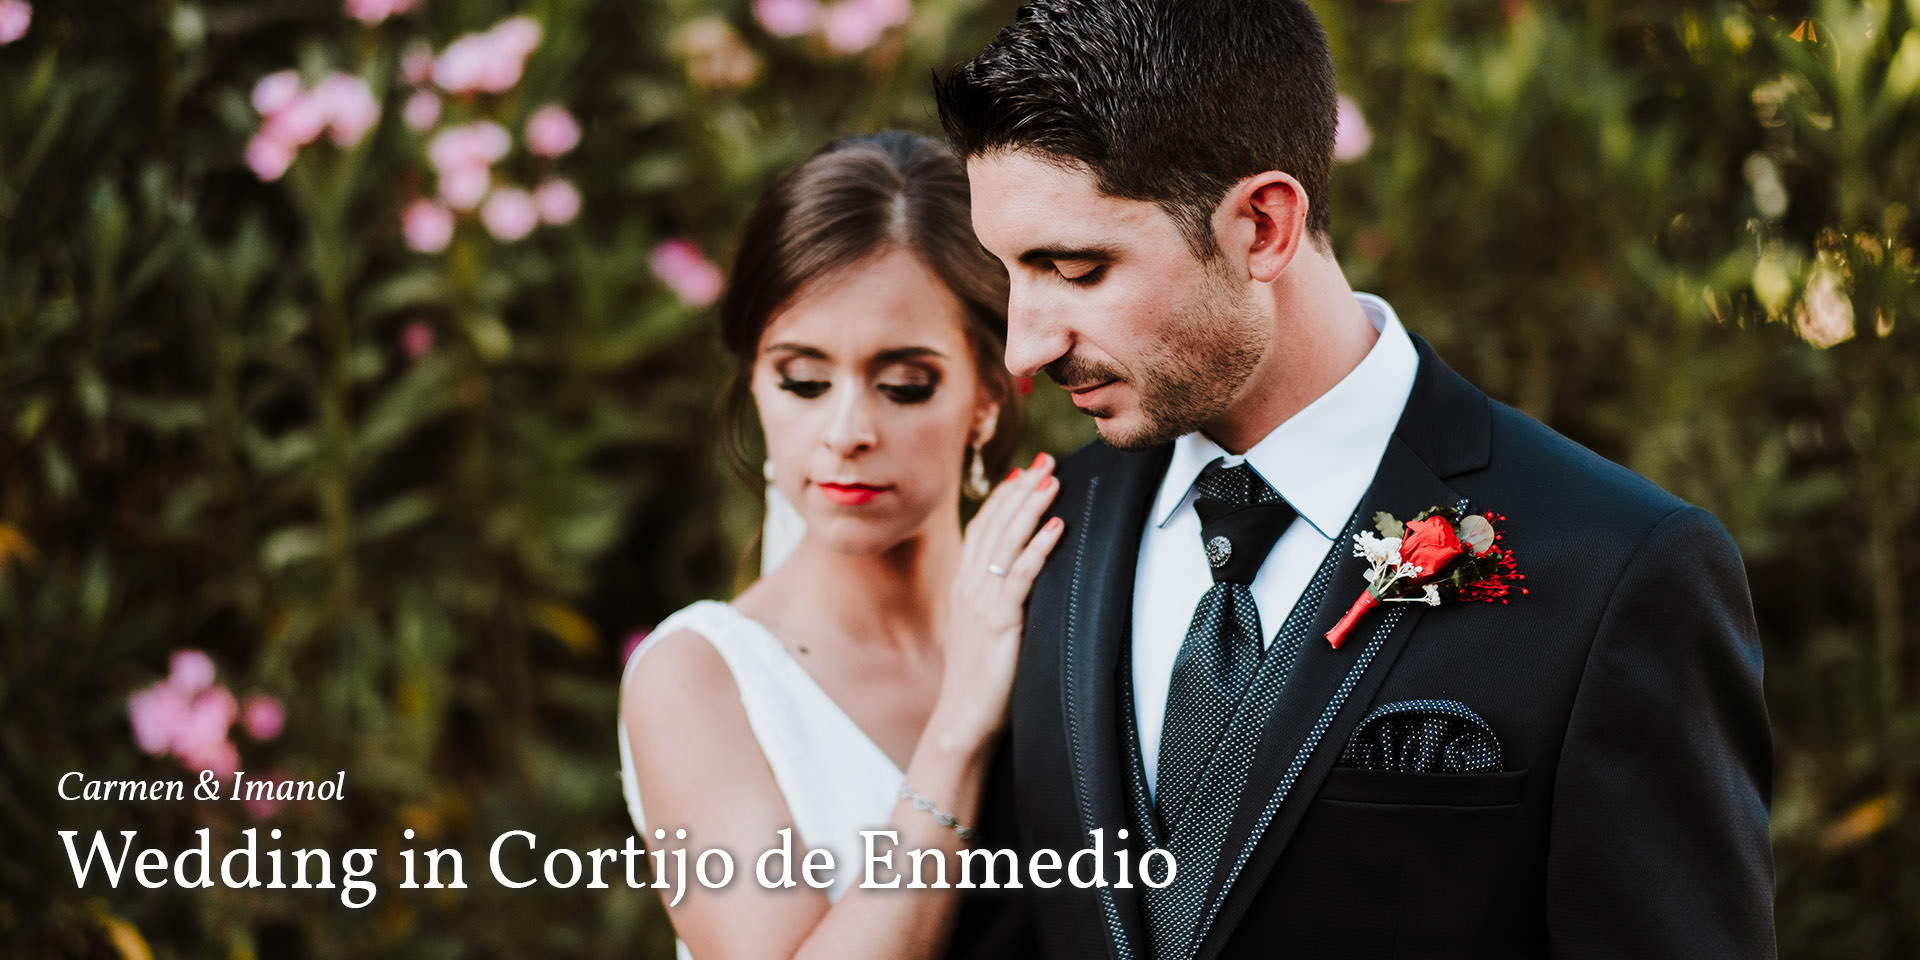 Wedding in Cortijo de Enmedio, Granada